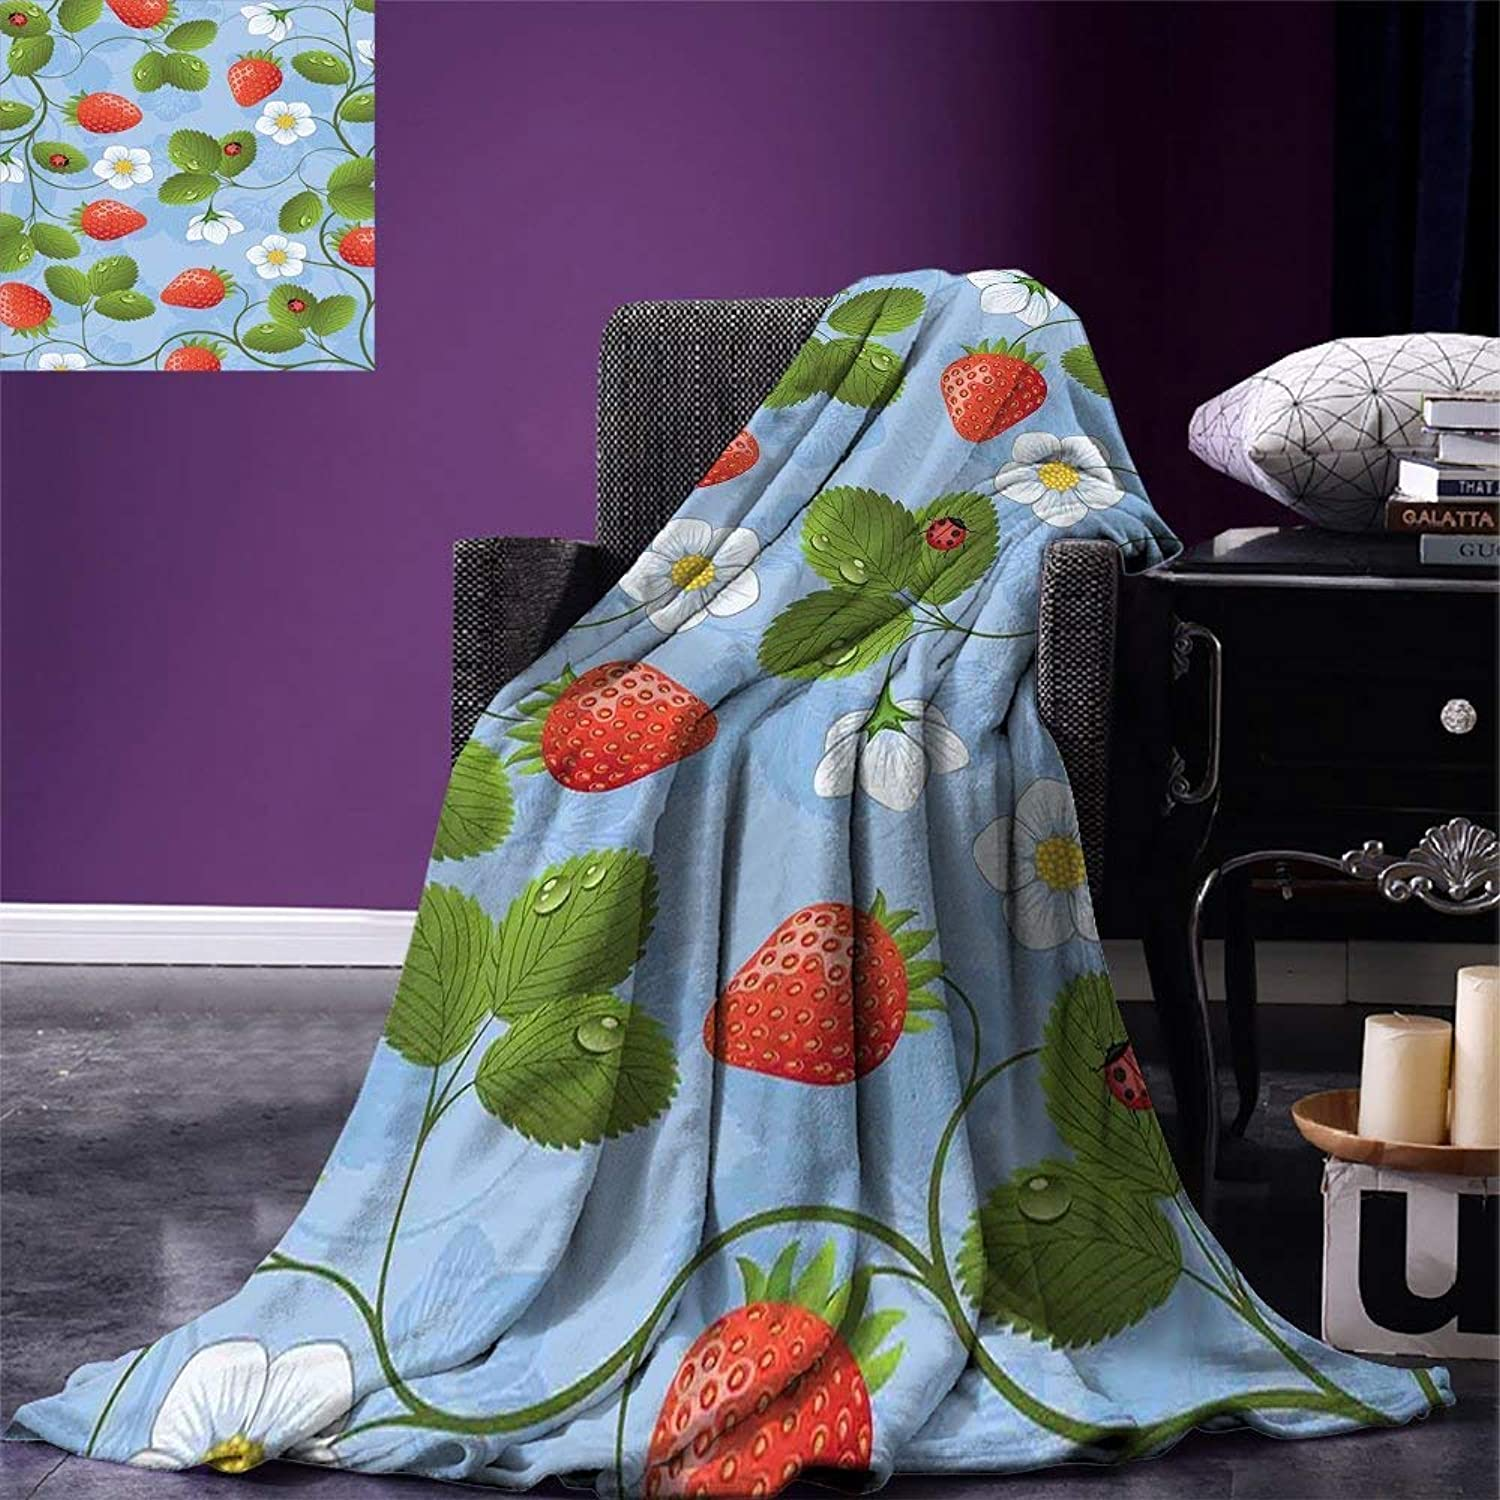 VANKINE Ladybugs Super Soft Lightweight Blanket Strawberries Daisies and Ladybugs Looks Like Ivy Plant Spotted Insects Image Oversized Travel Fashion Cover Blanket bluee Green Red